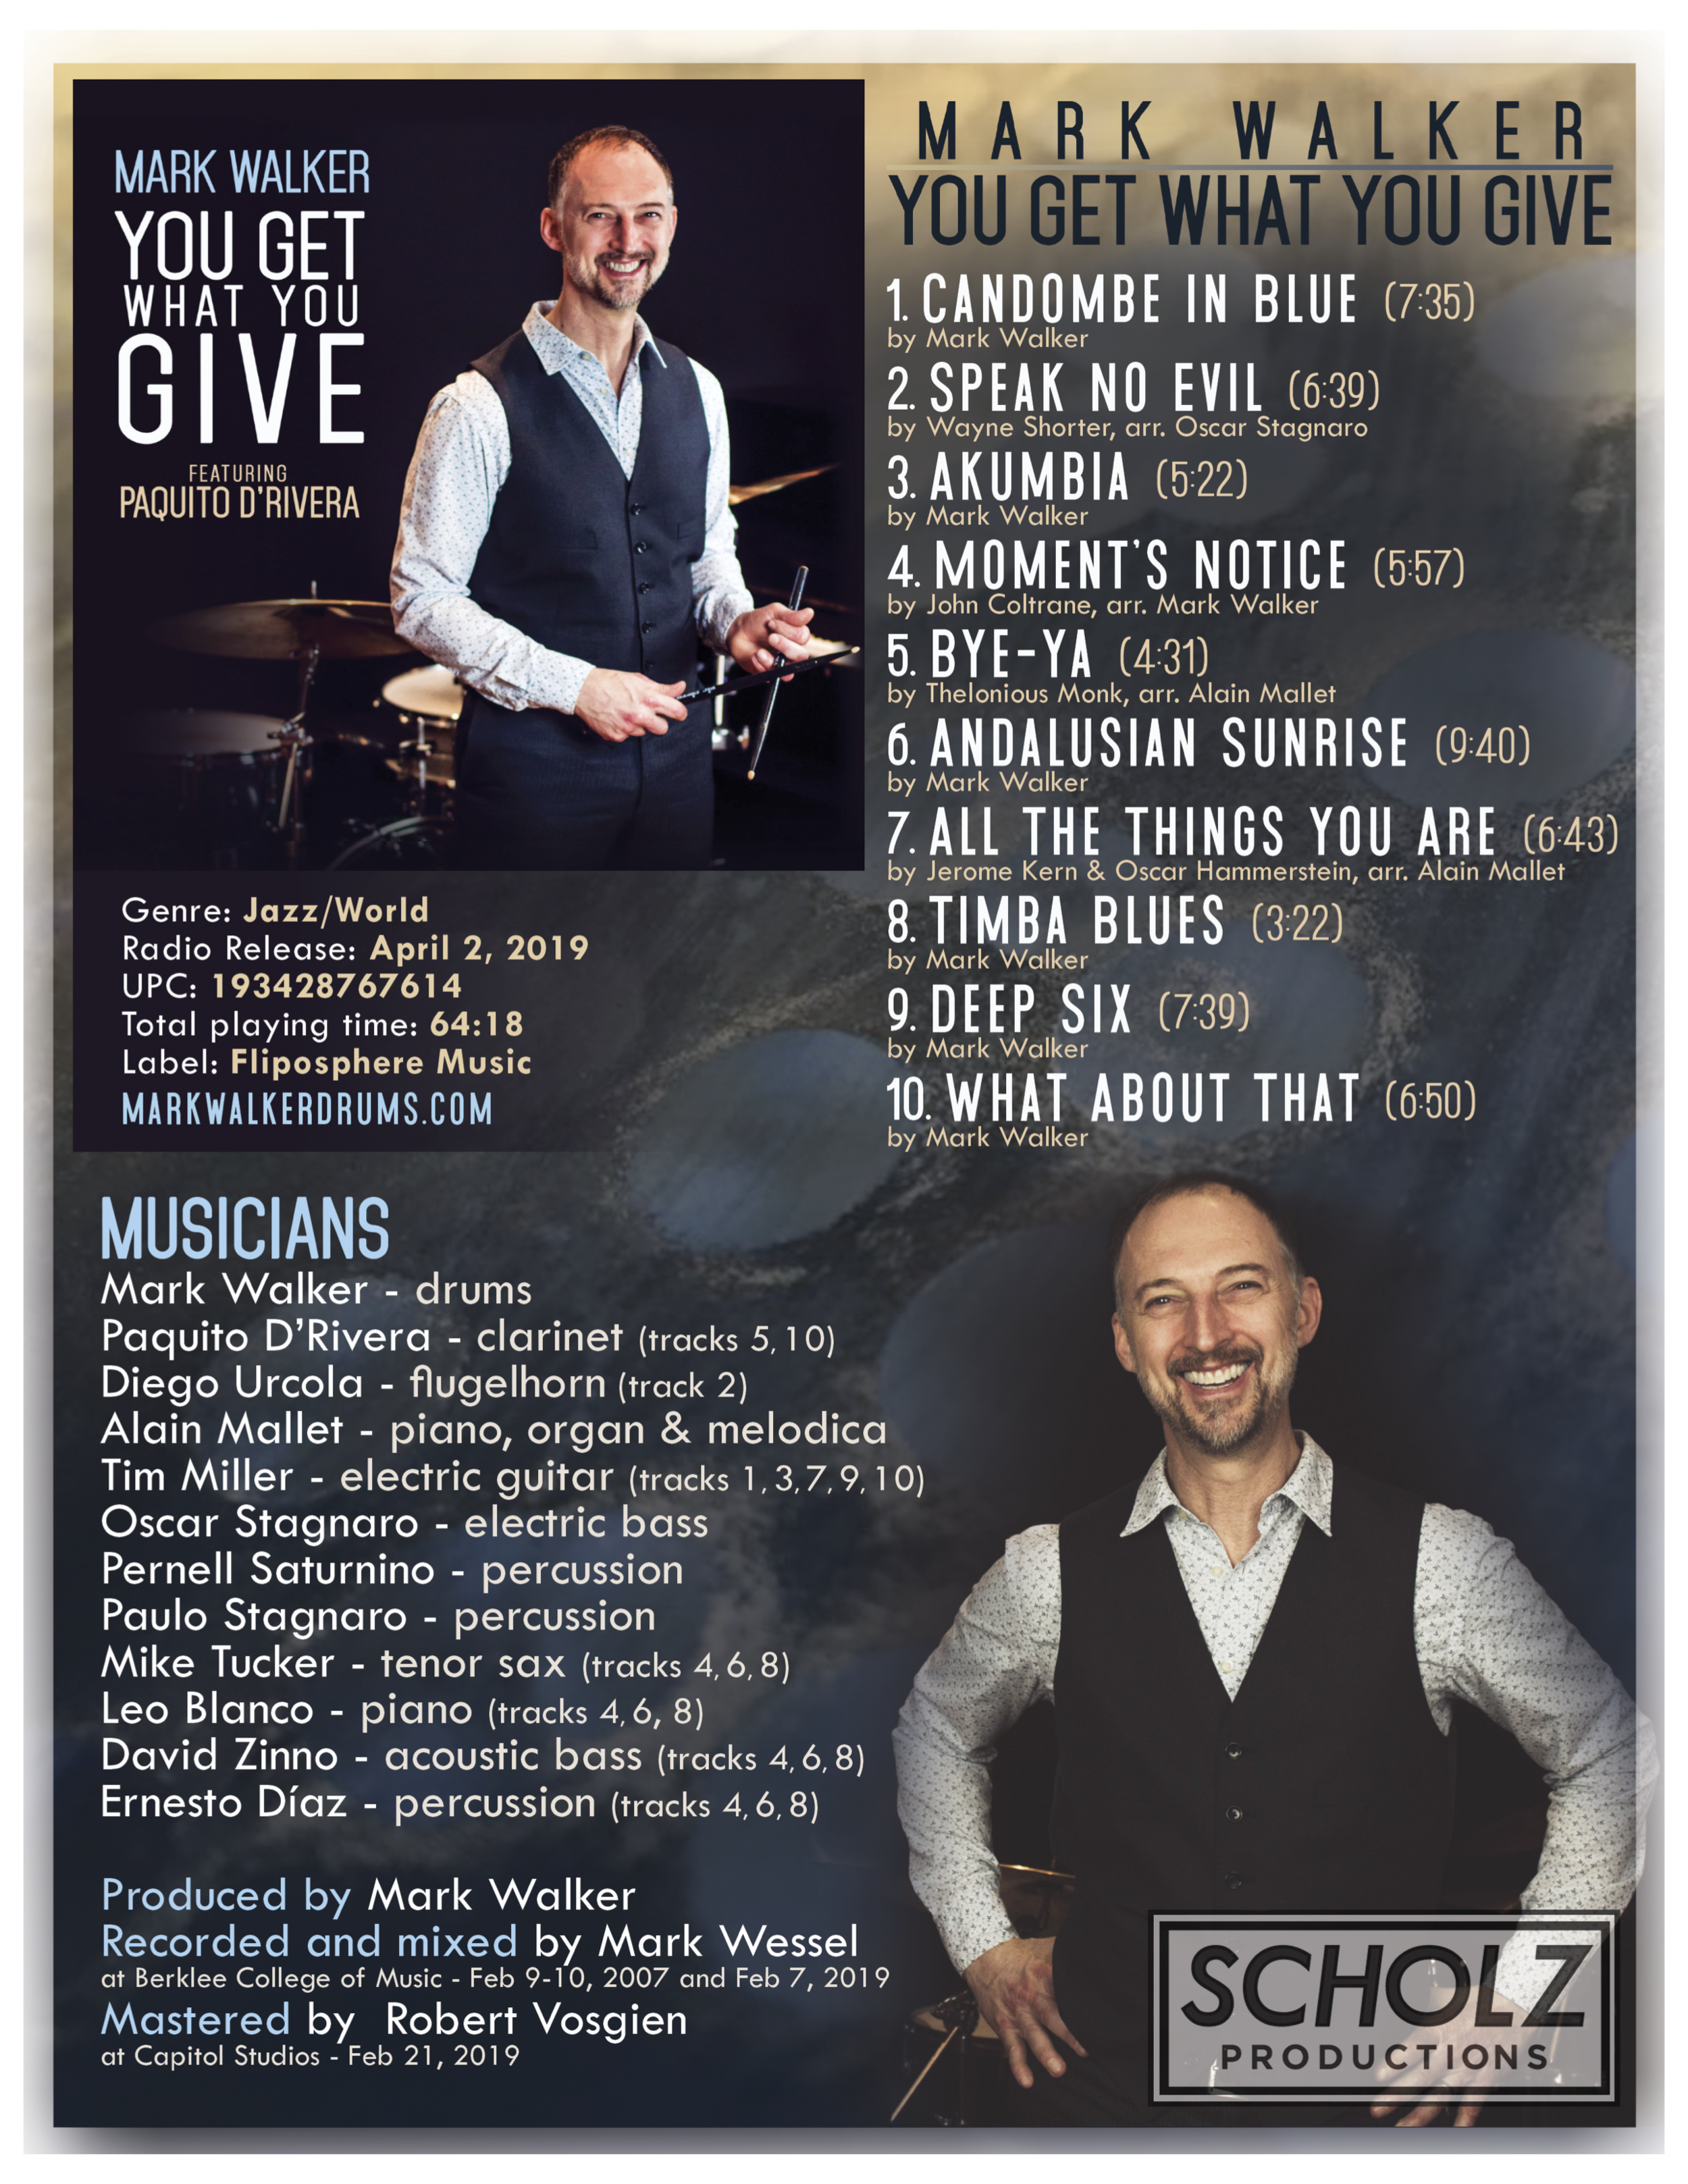 OS_Mark Walker_You Get What You Give.png